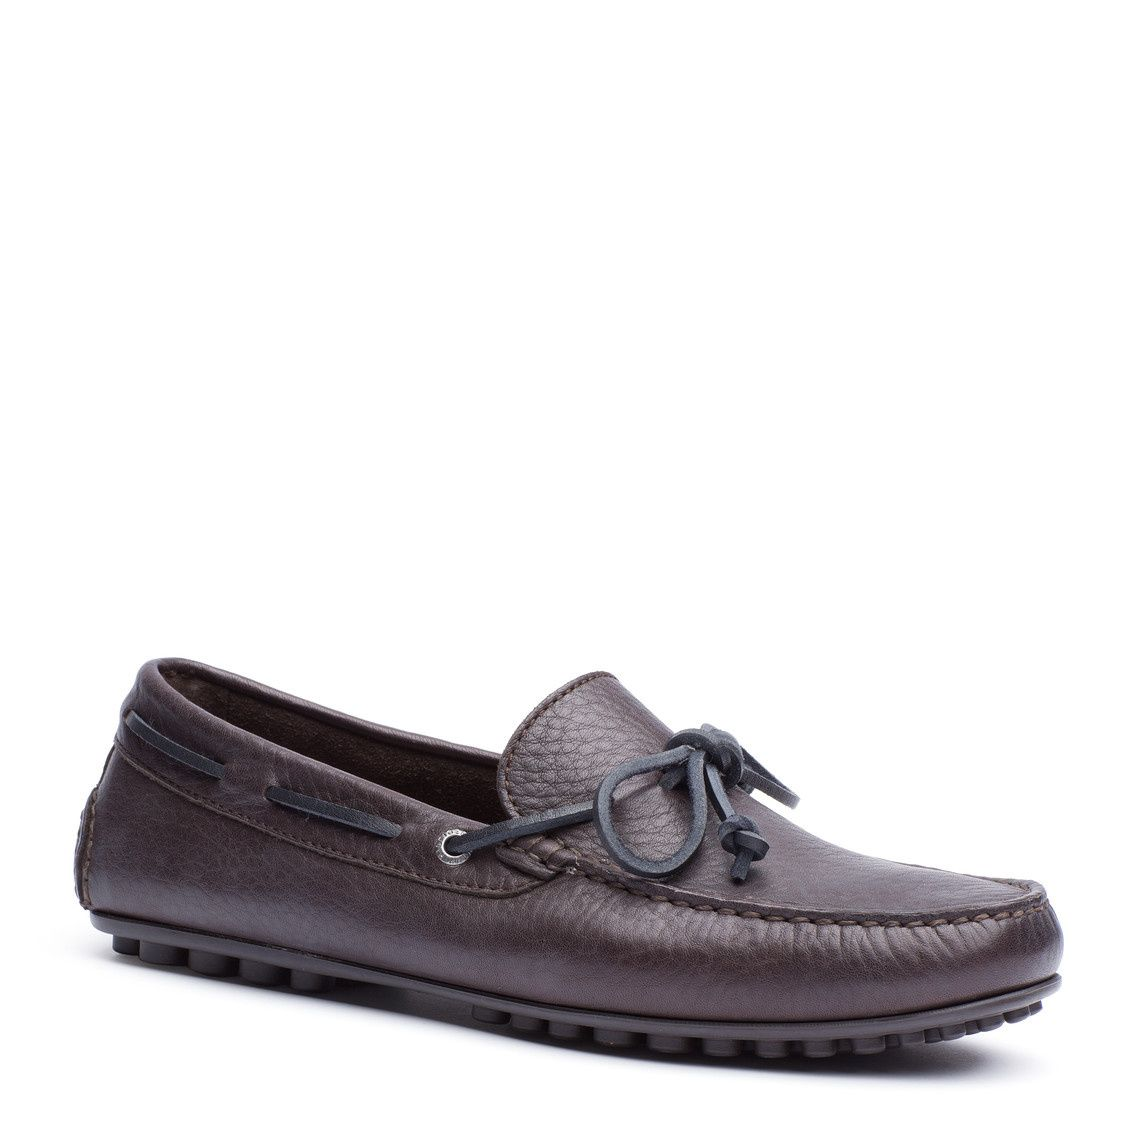 b2341a96c Amalfi Loafer